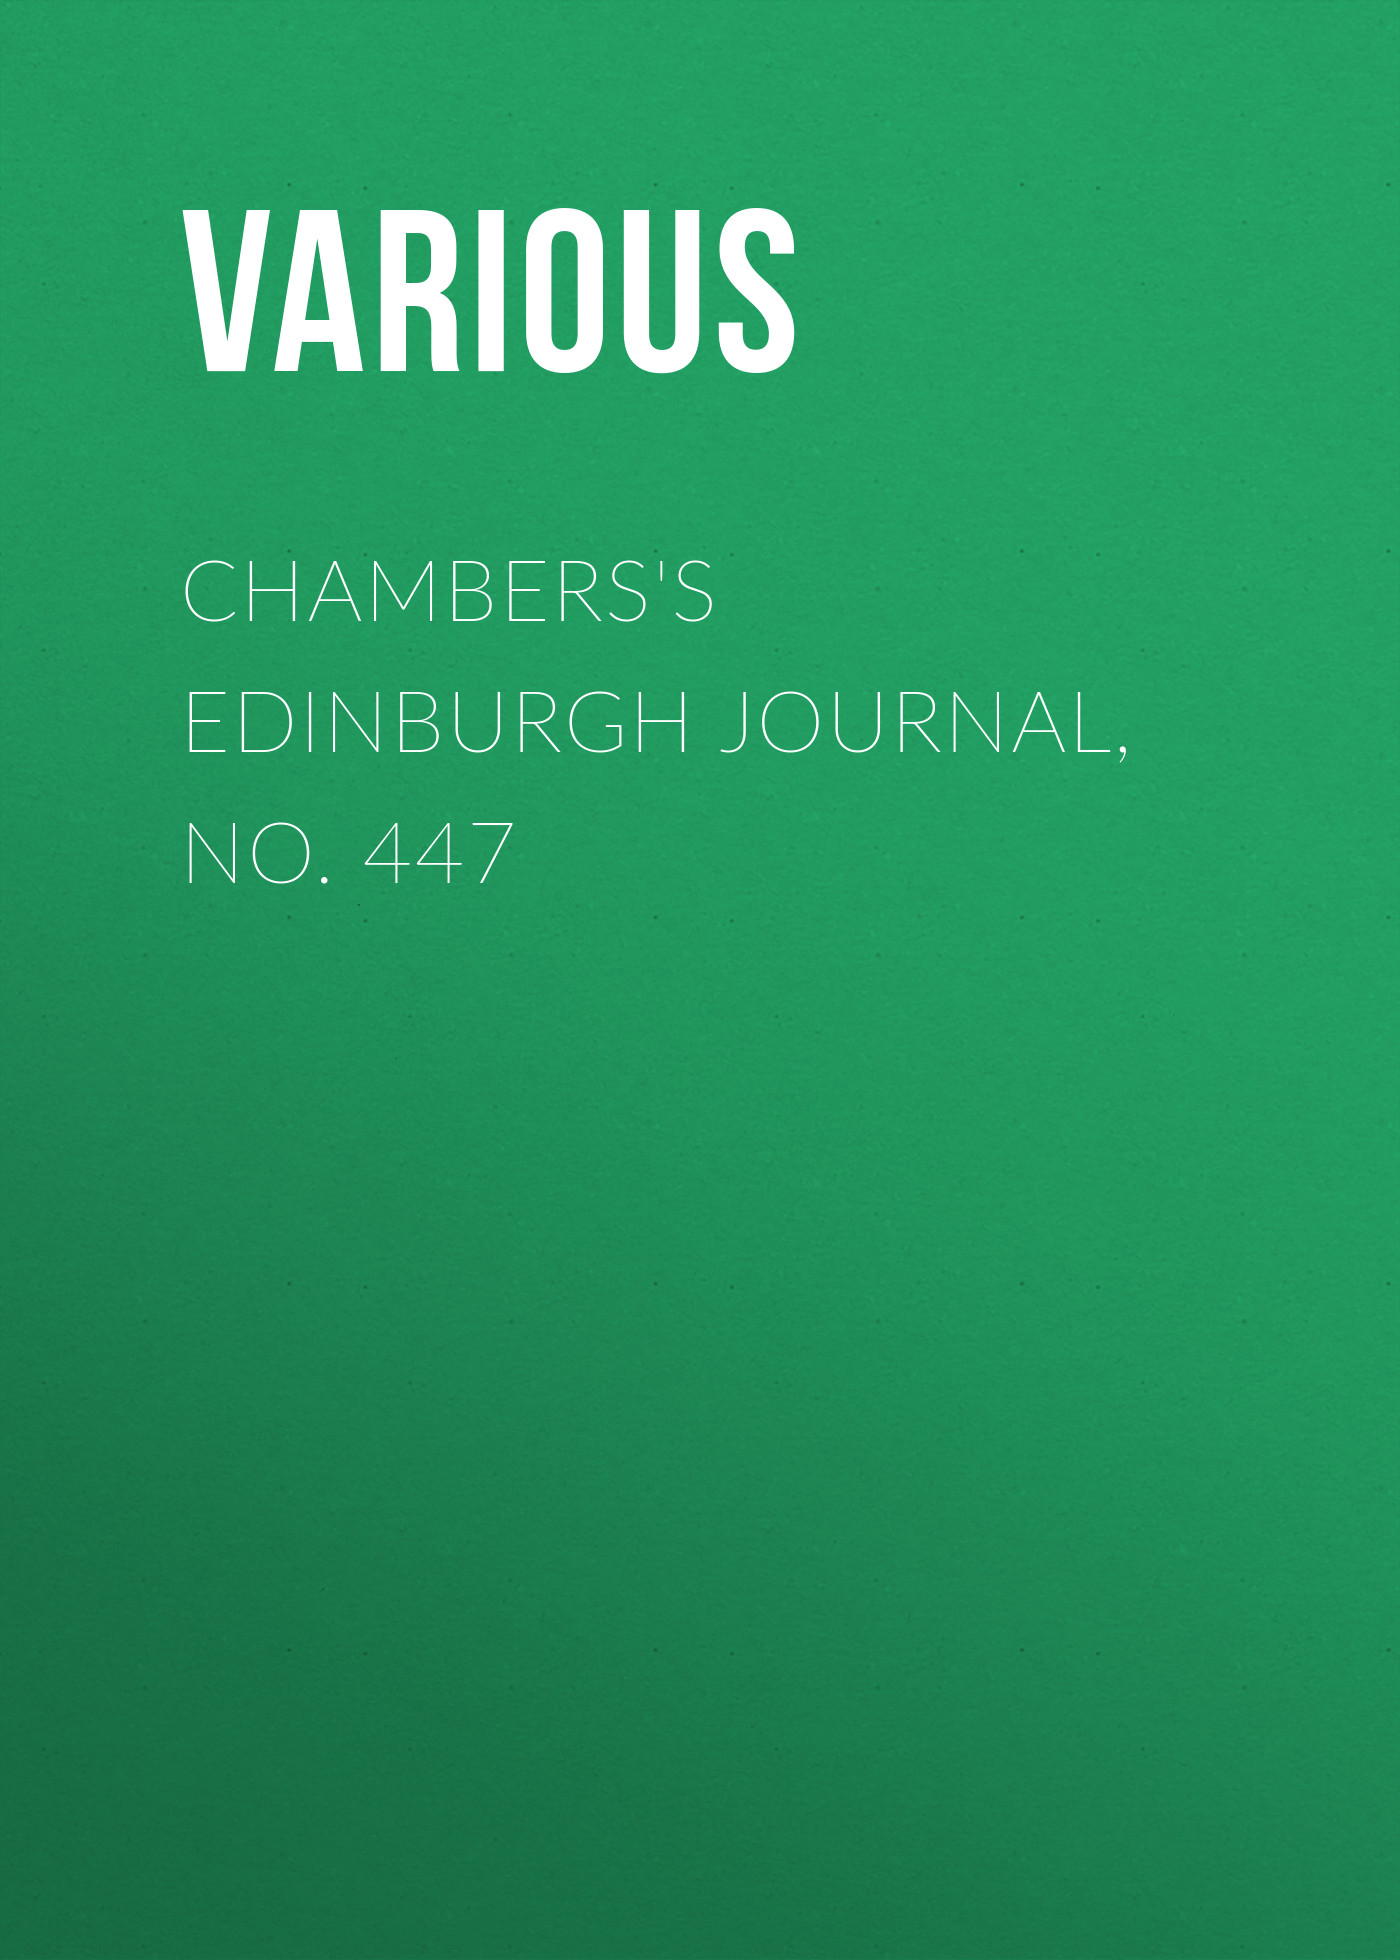 Various Chambers's Edinburgh Journal, No. 447 dara o briain edinburgh